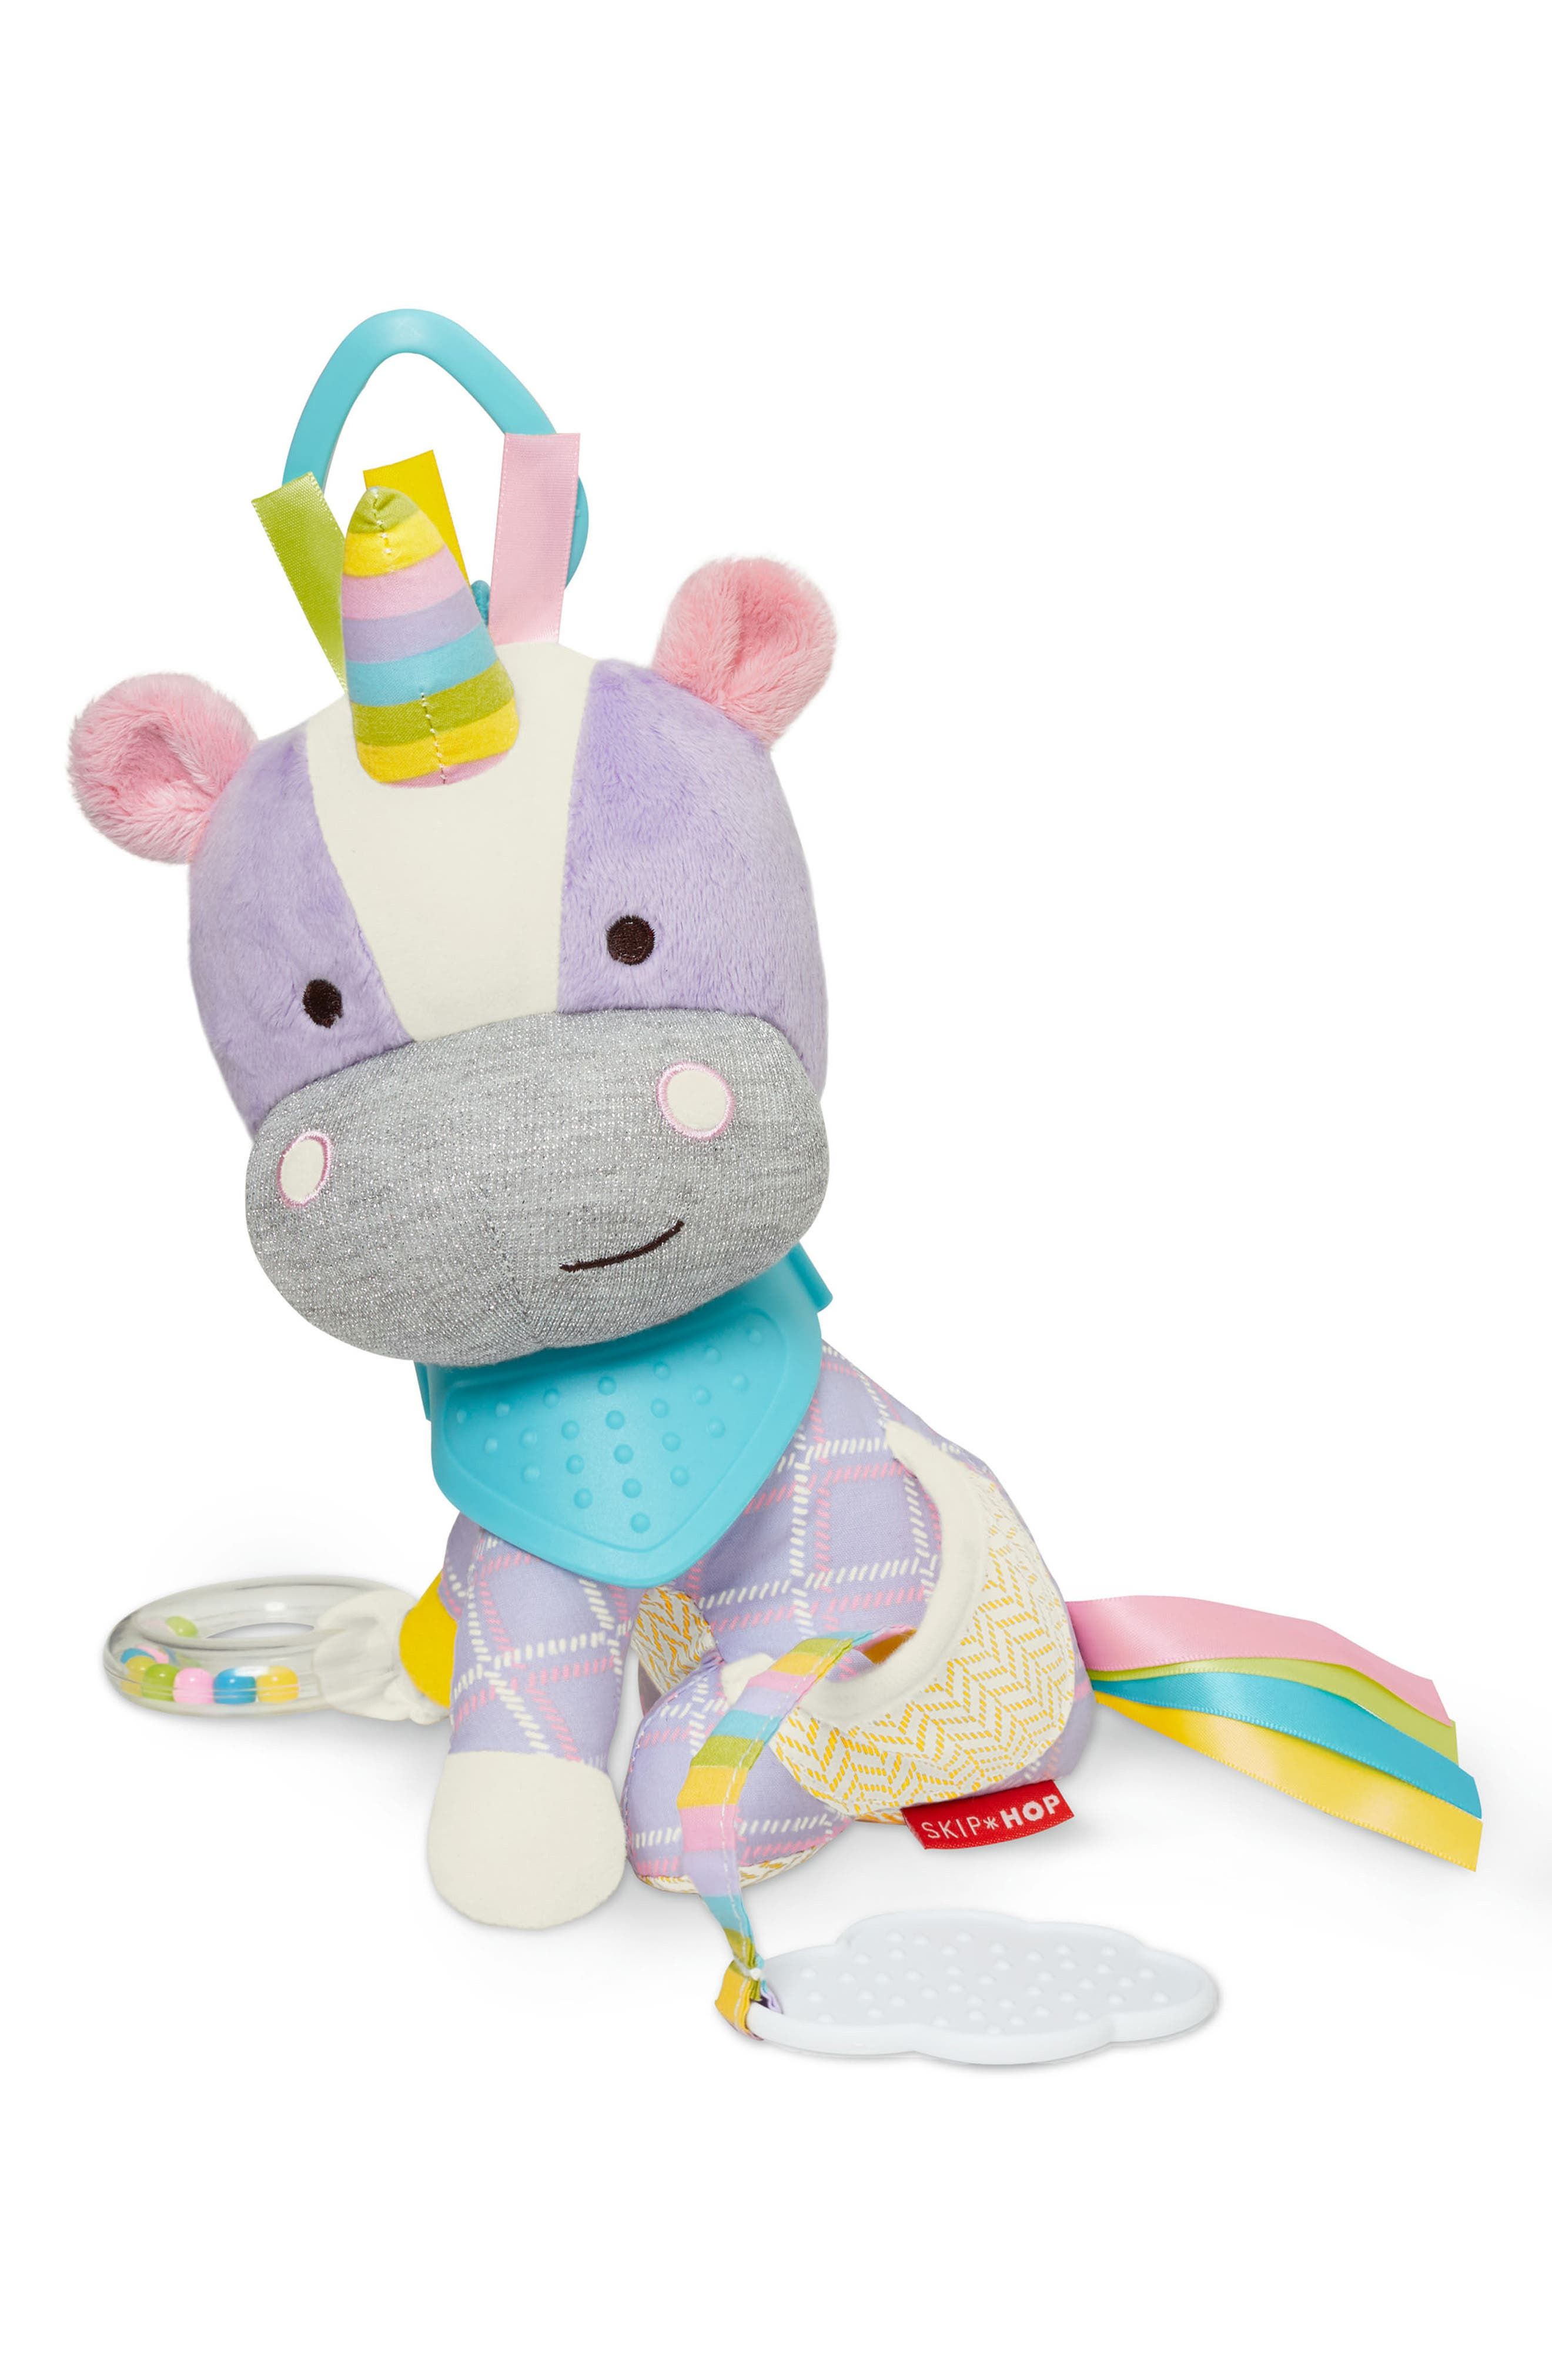 Bandana Buddies Activity Unicorn,                         Main,                         color, 500